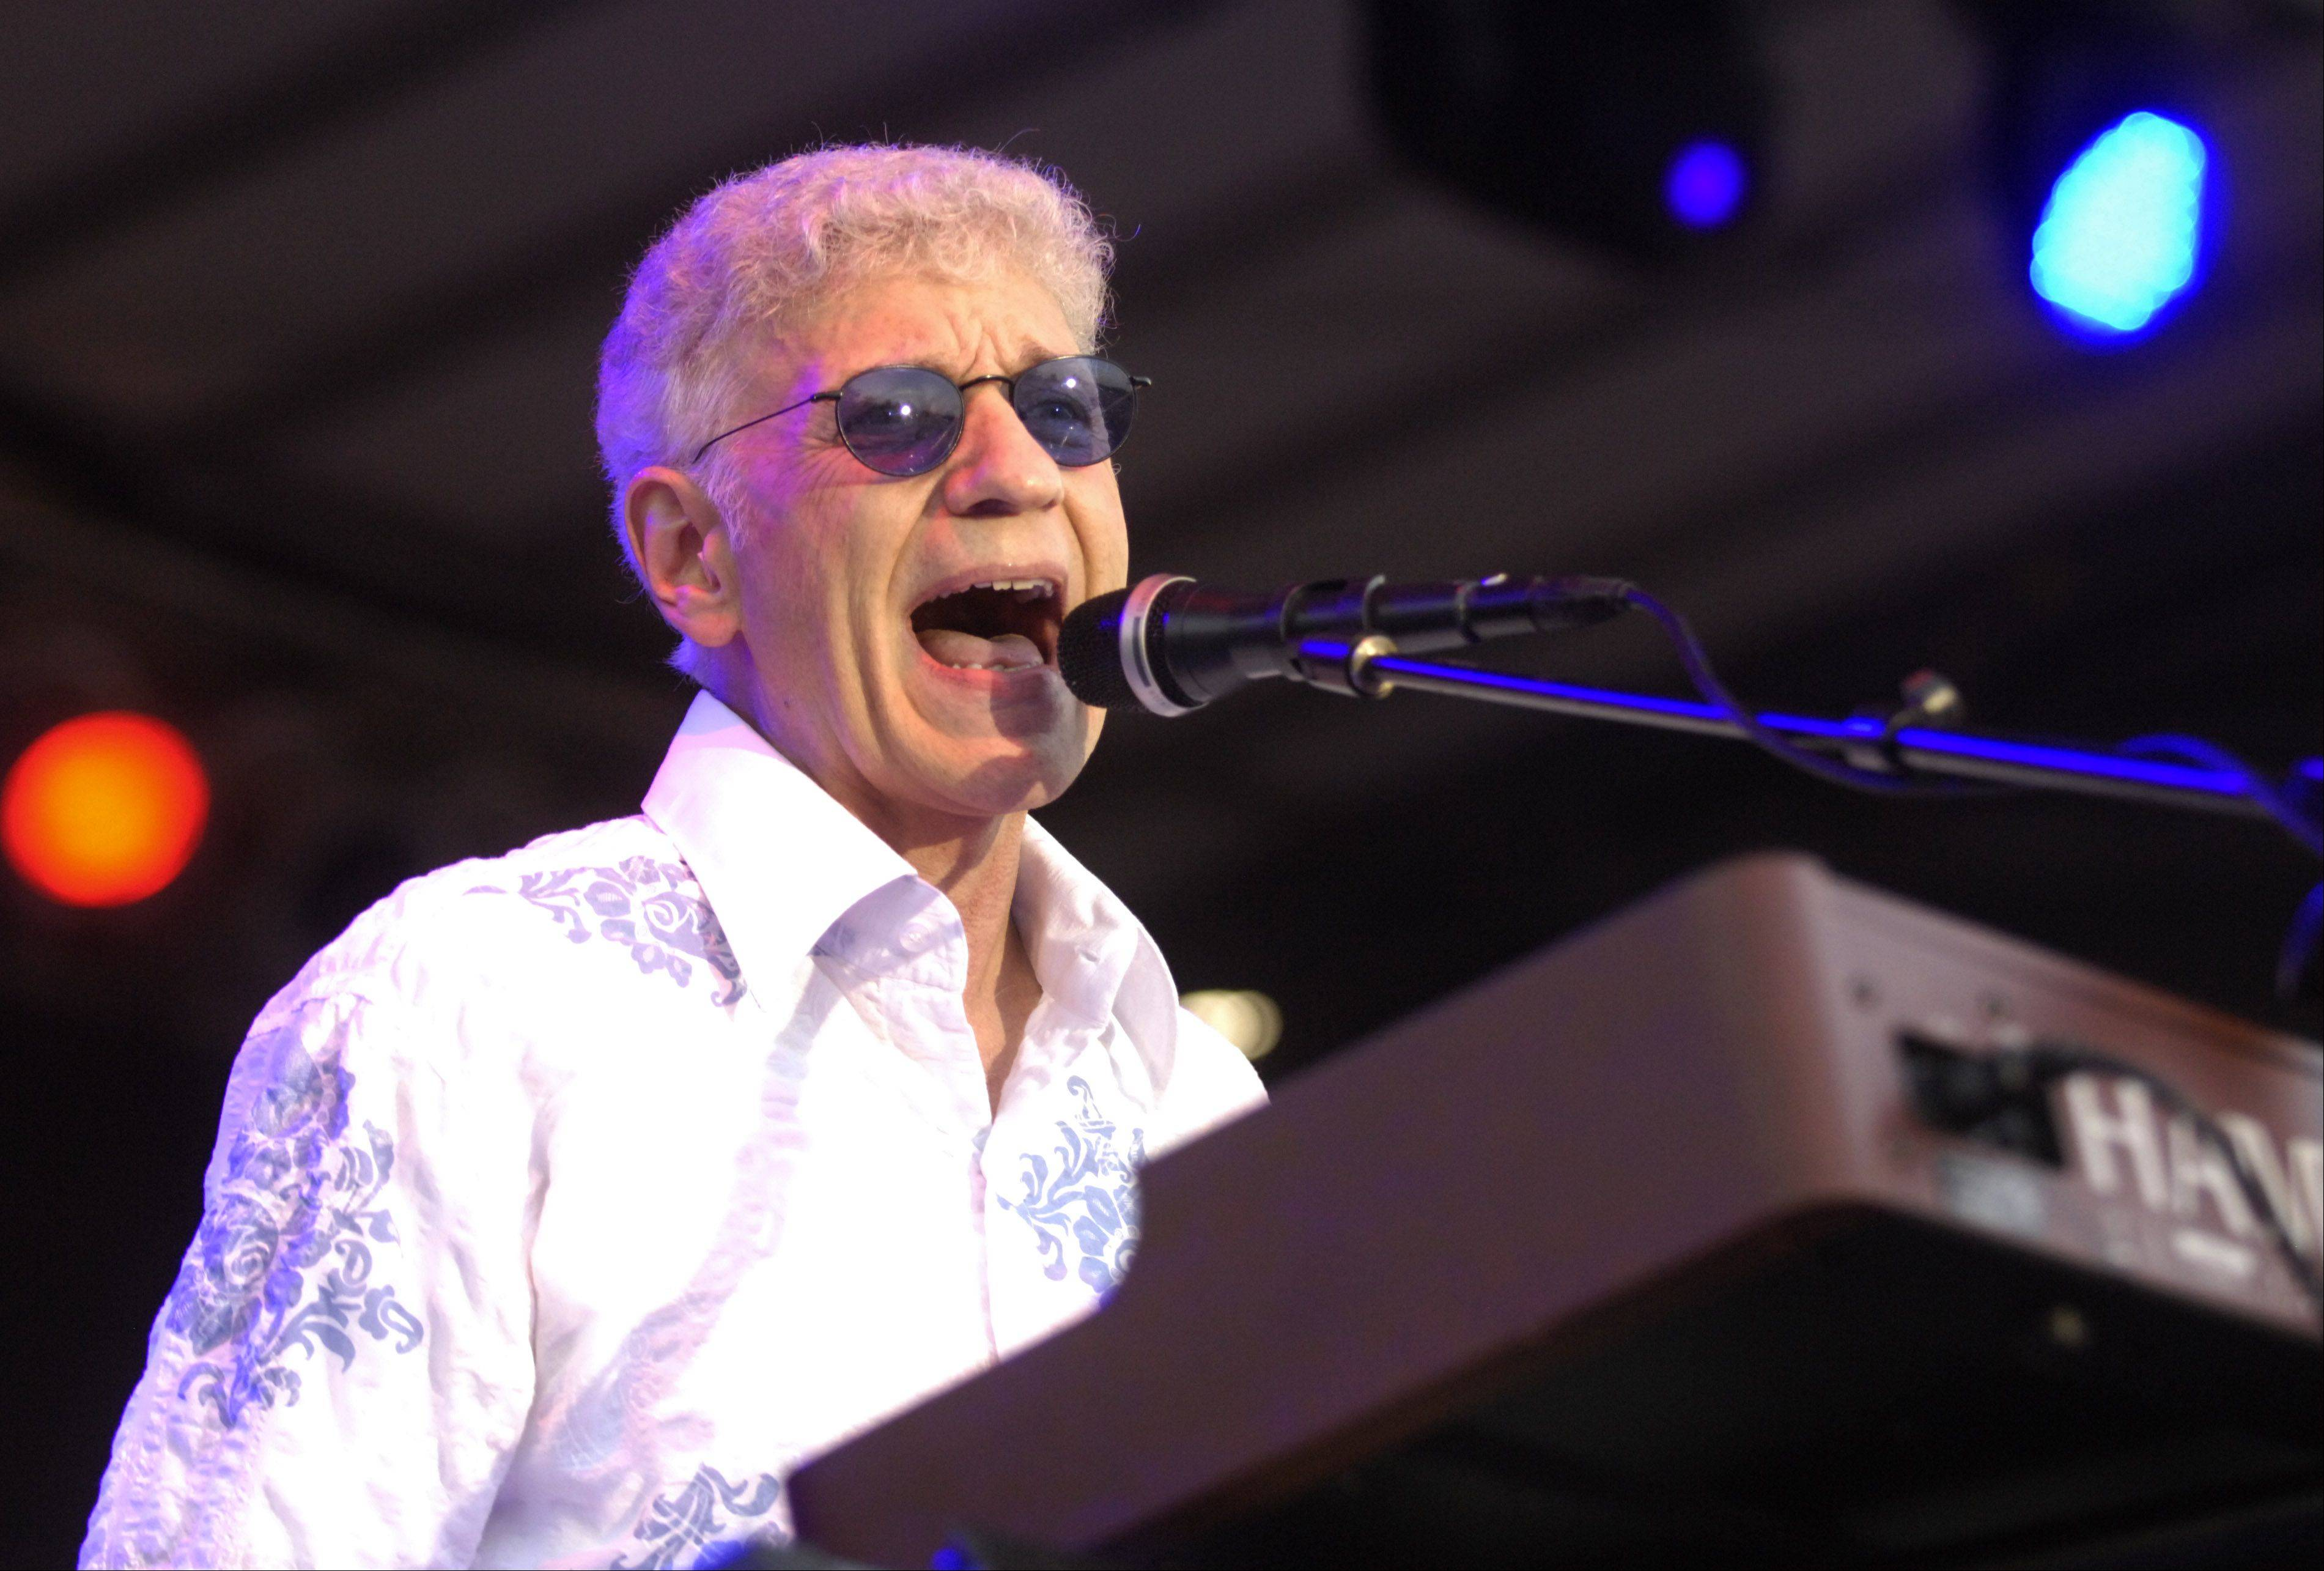 Dennis DeYoung performs at 8 p.m. Saturday, April 27, at the Arcada Theatre in St. Charles.